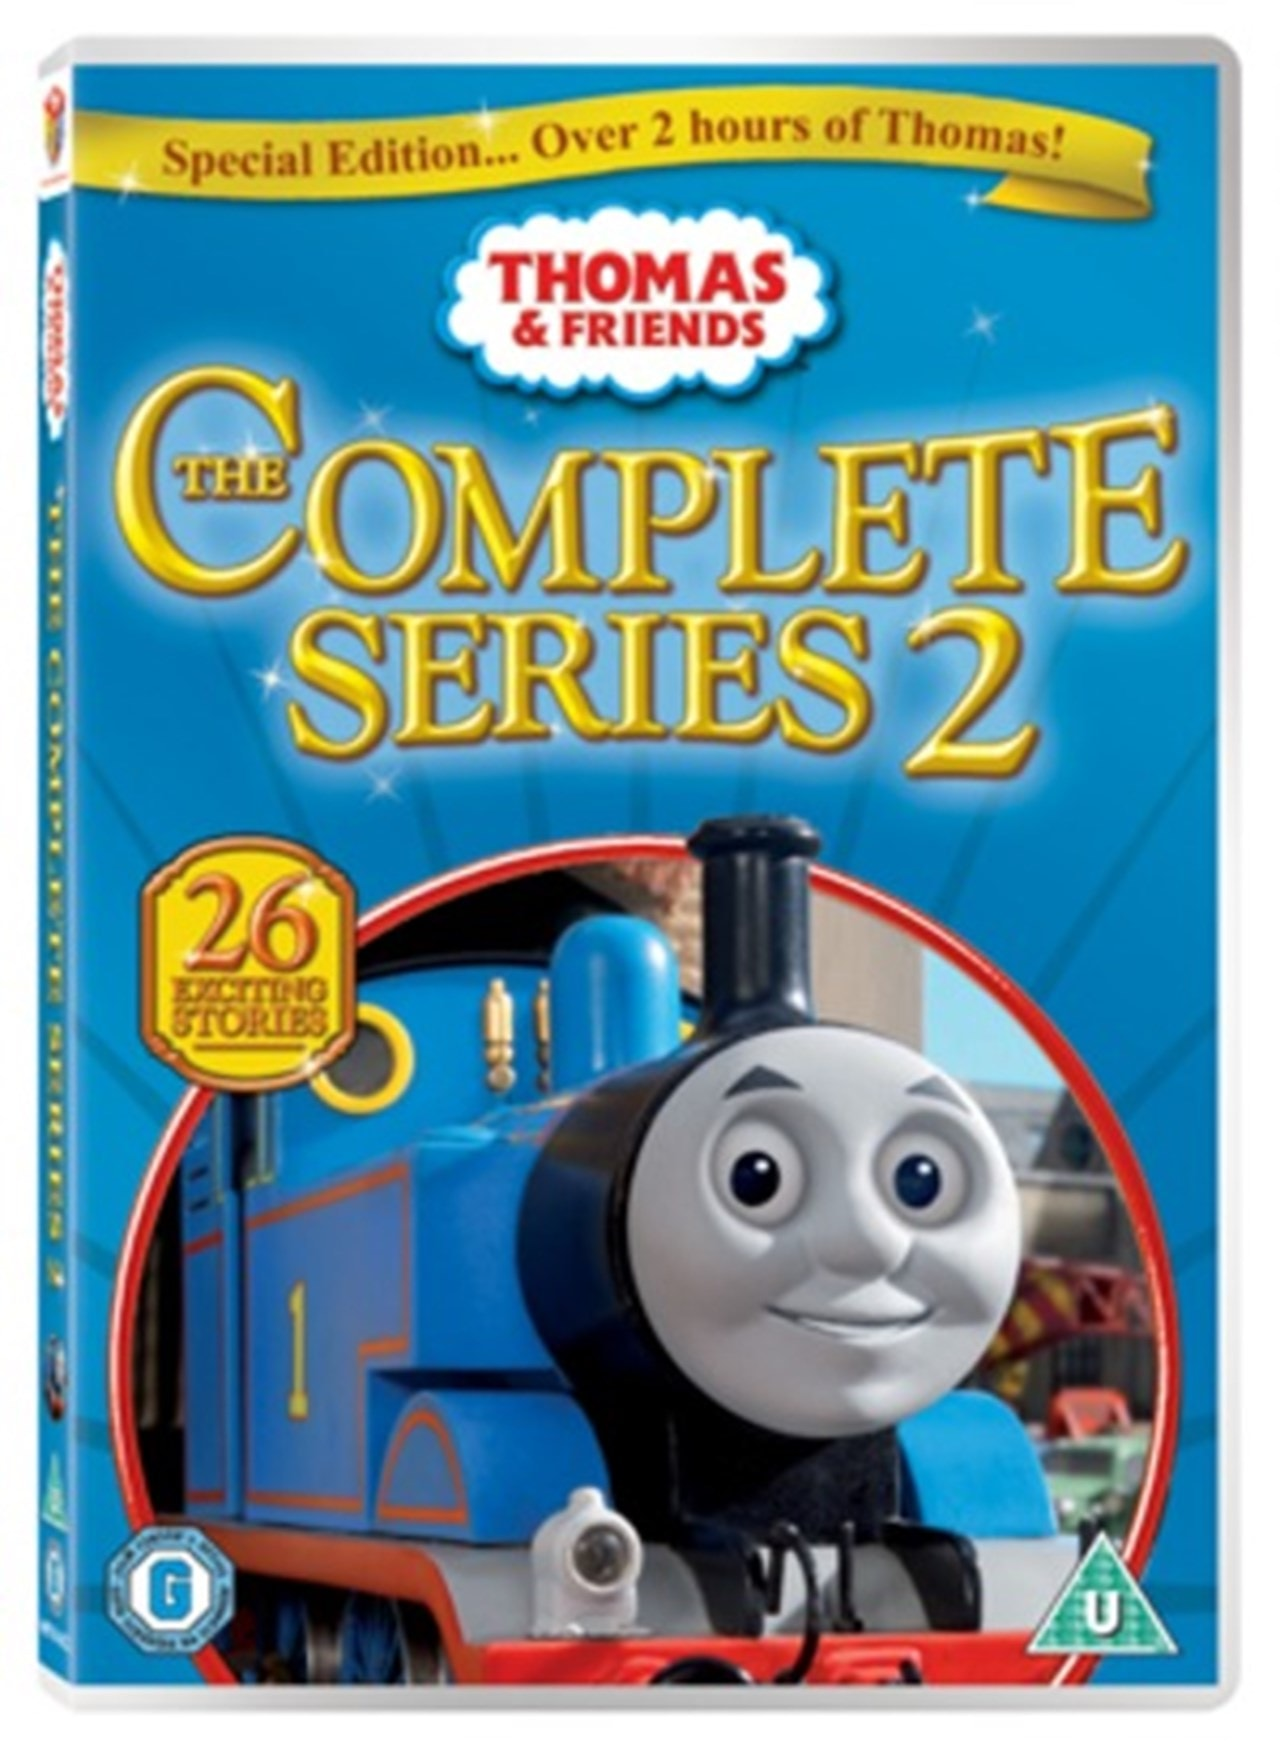 Thomas & Friends: The Complete Series 2 - 1